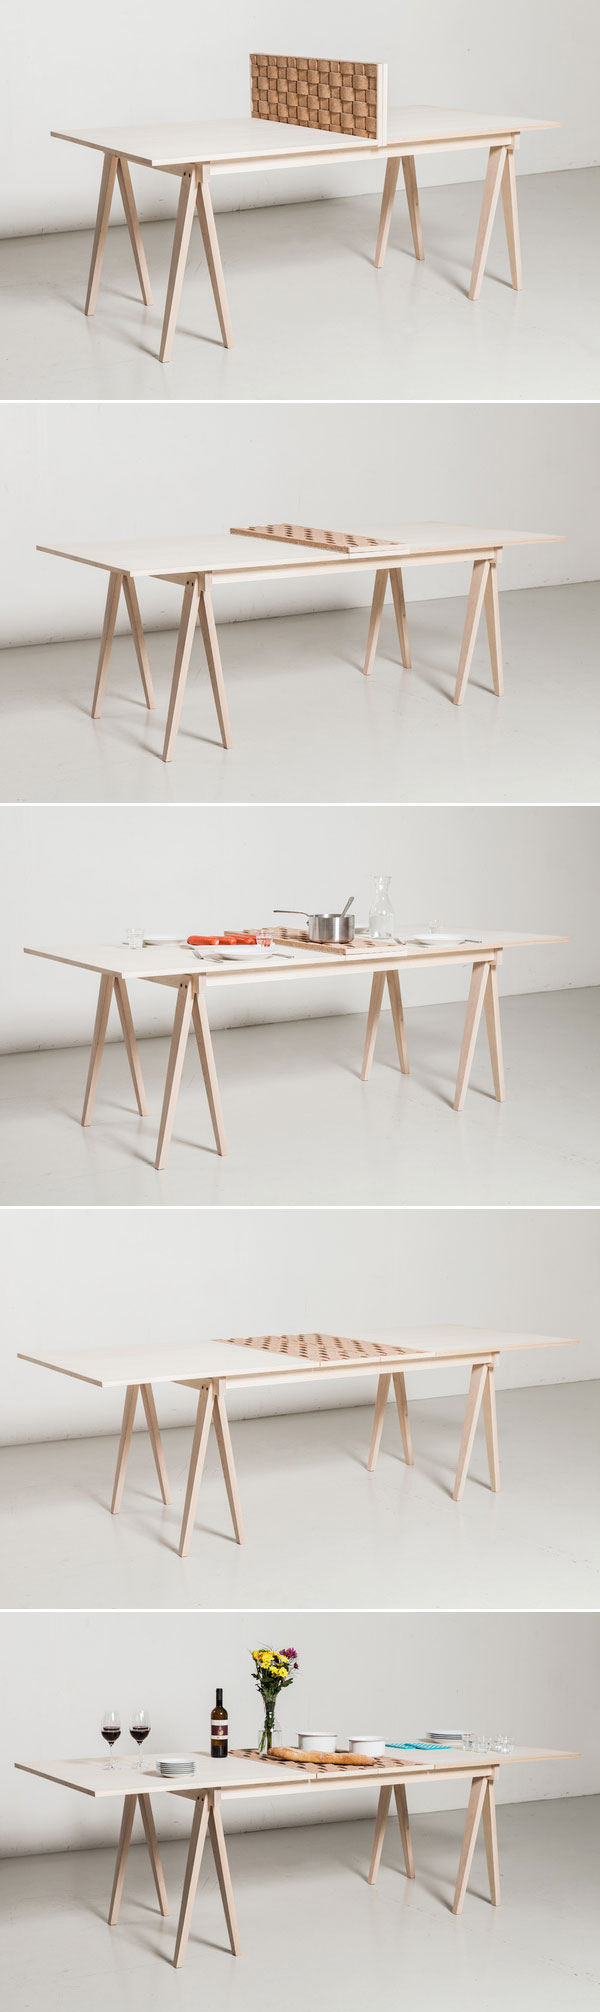 3-Extendable-dining-table